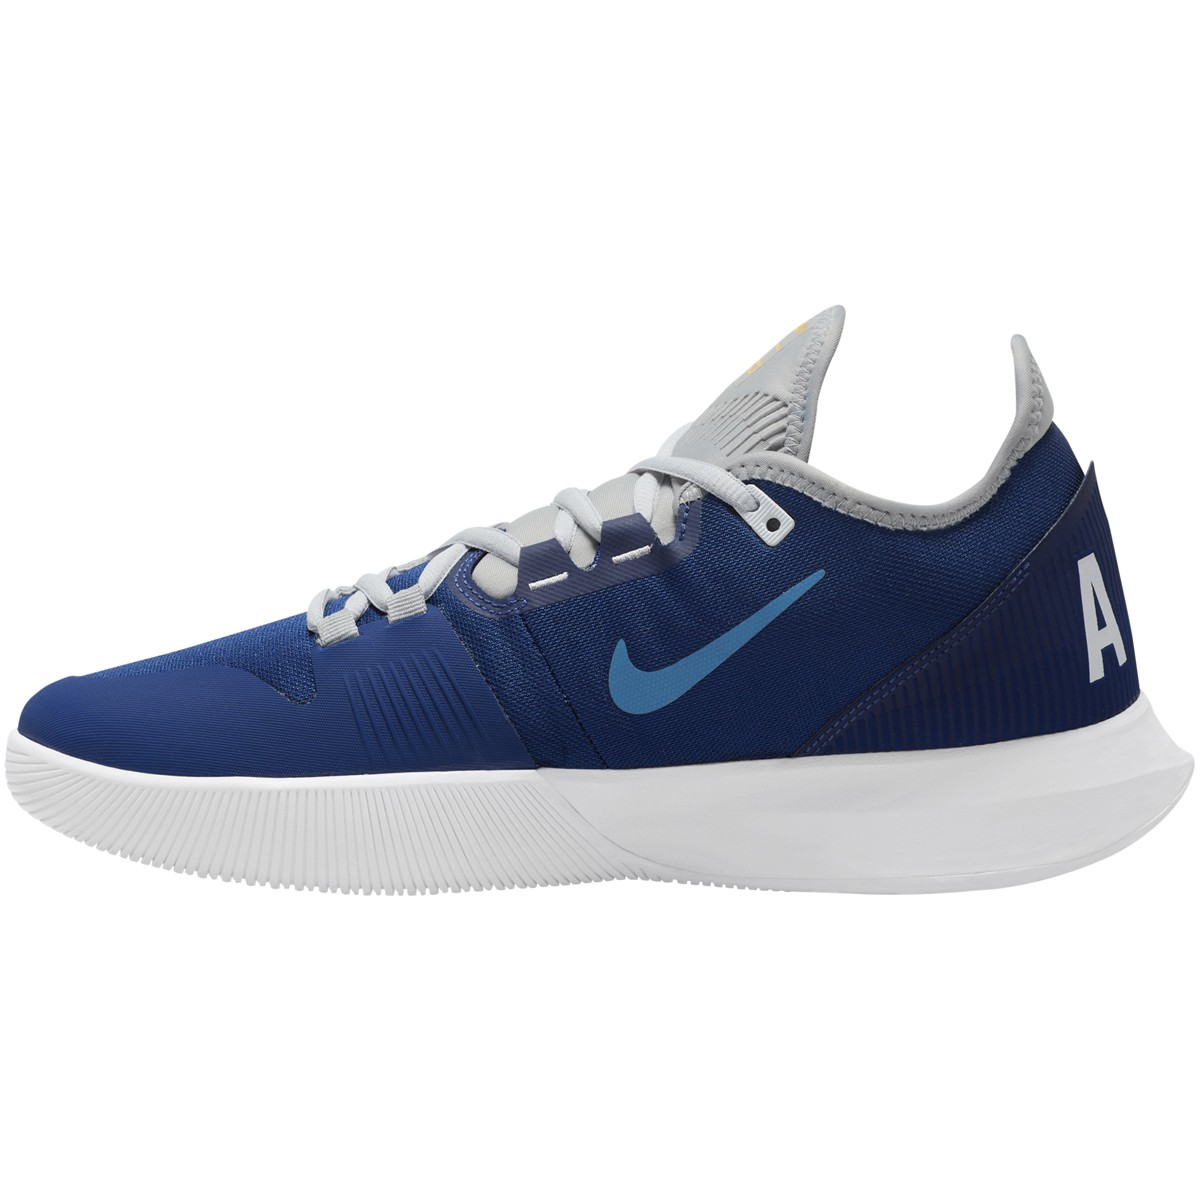 Chaussures Nike Air Max Wildcard Toutes Surfaces - Chaussures ...